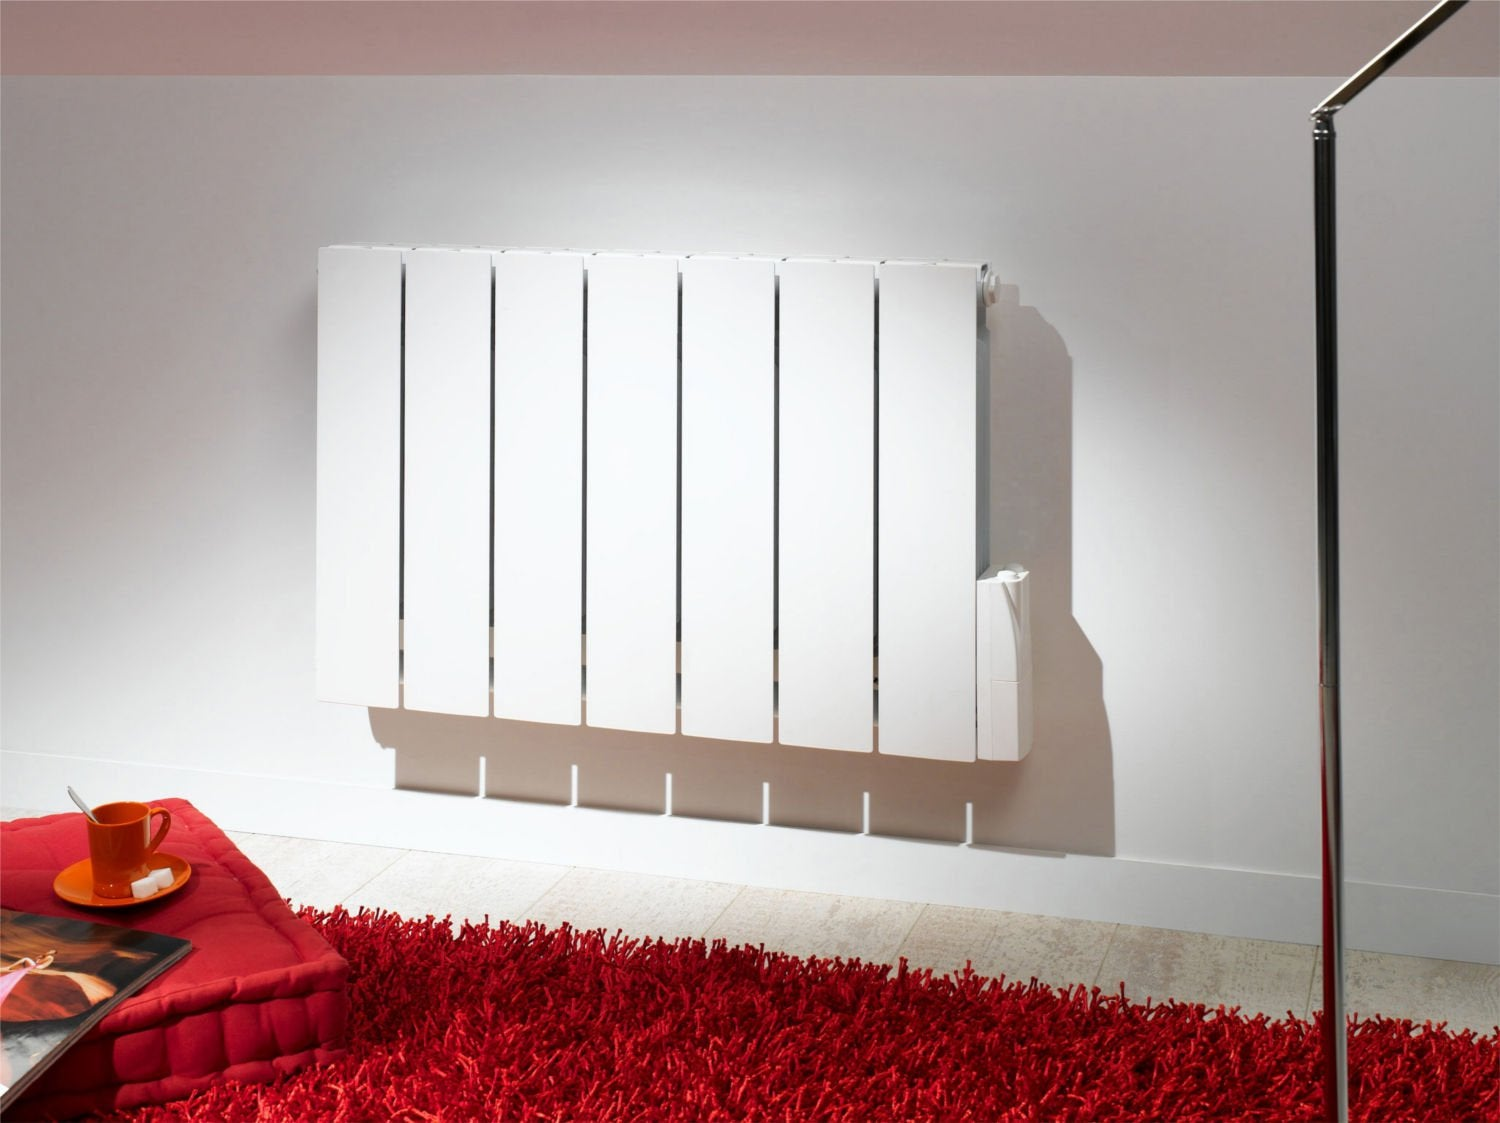 comment poser un plancher rayonnant leroy merlin. Black Bedroom Furniture Sets. Home Design Ideas